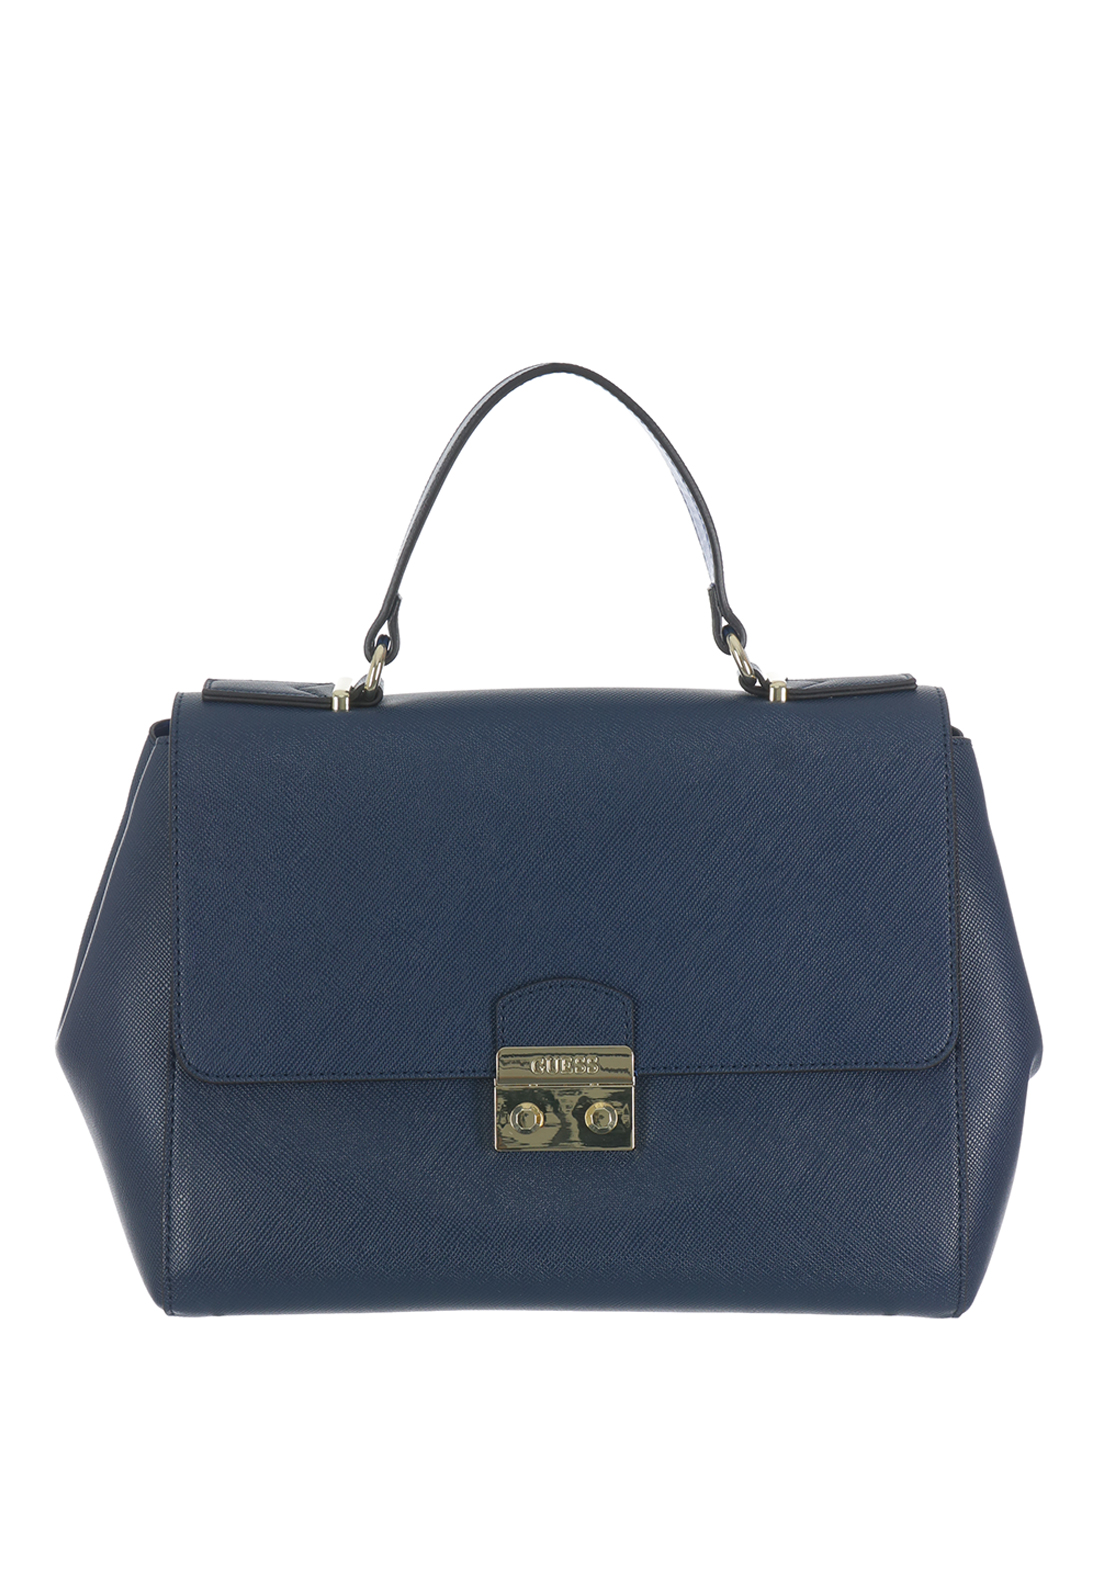 Guess Aria Top Handle Bag, Navy